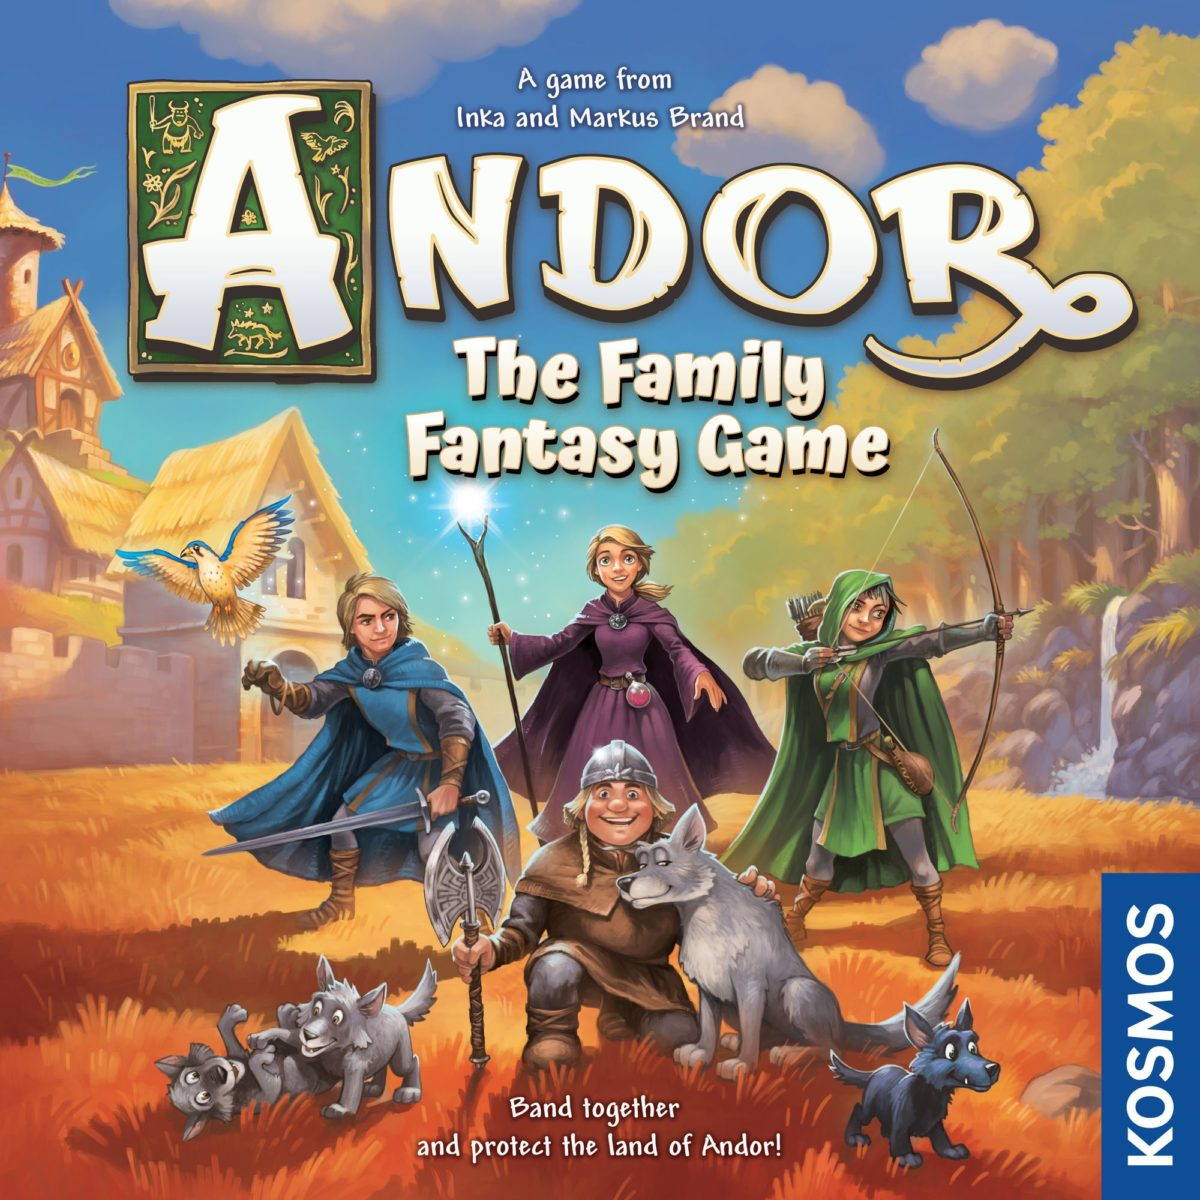 Image shows the box cover of Andor: The Family Fantasy Game by Kosmos Games. Image by Kosmos Games.